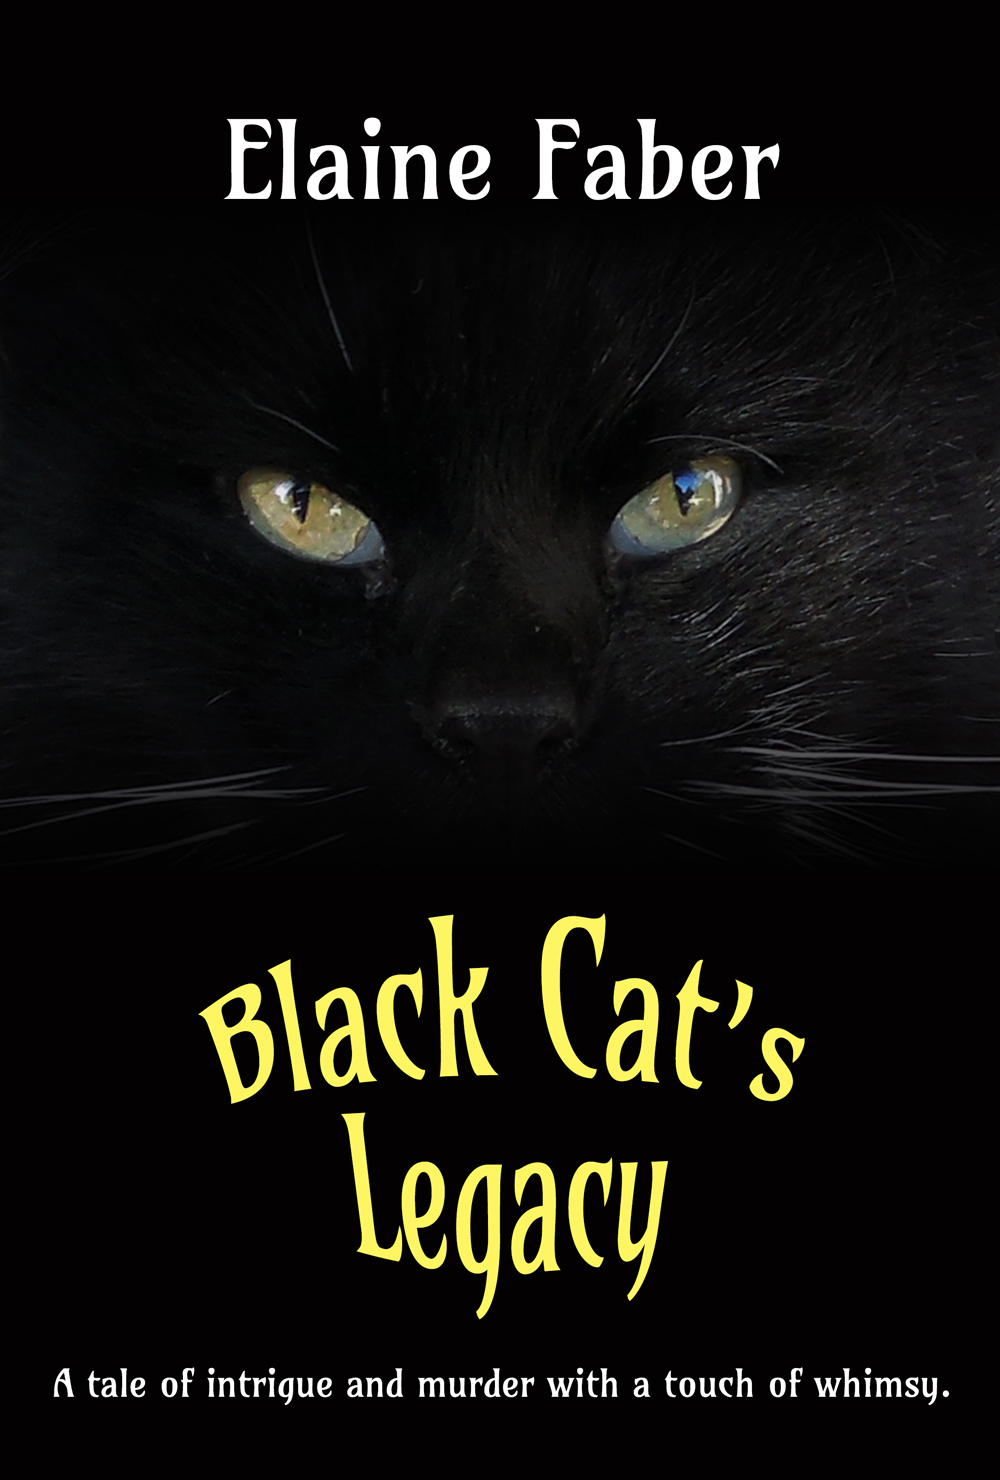 Black Cat's Legacy by Elaine Faber